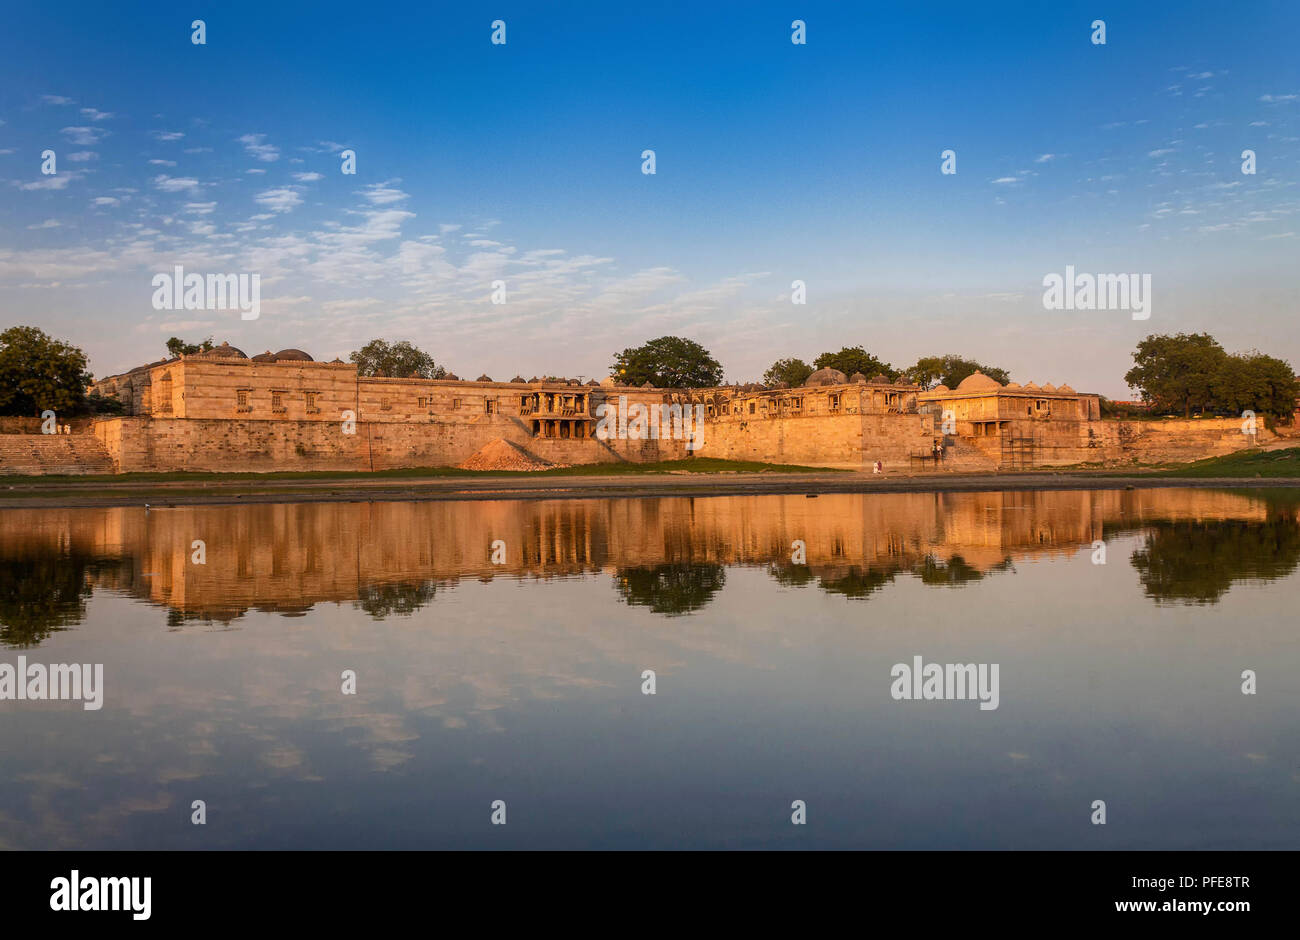 Ahmedabad,Gujarat,India, December 08,2014  A View Of Ancient Mosque And Tomb Complex Across Water In Sarkhej Roza.. Stock Photo